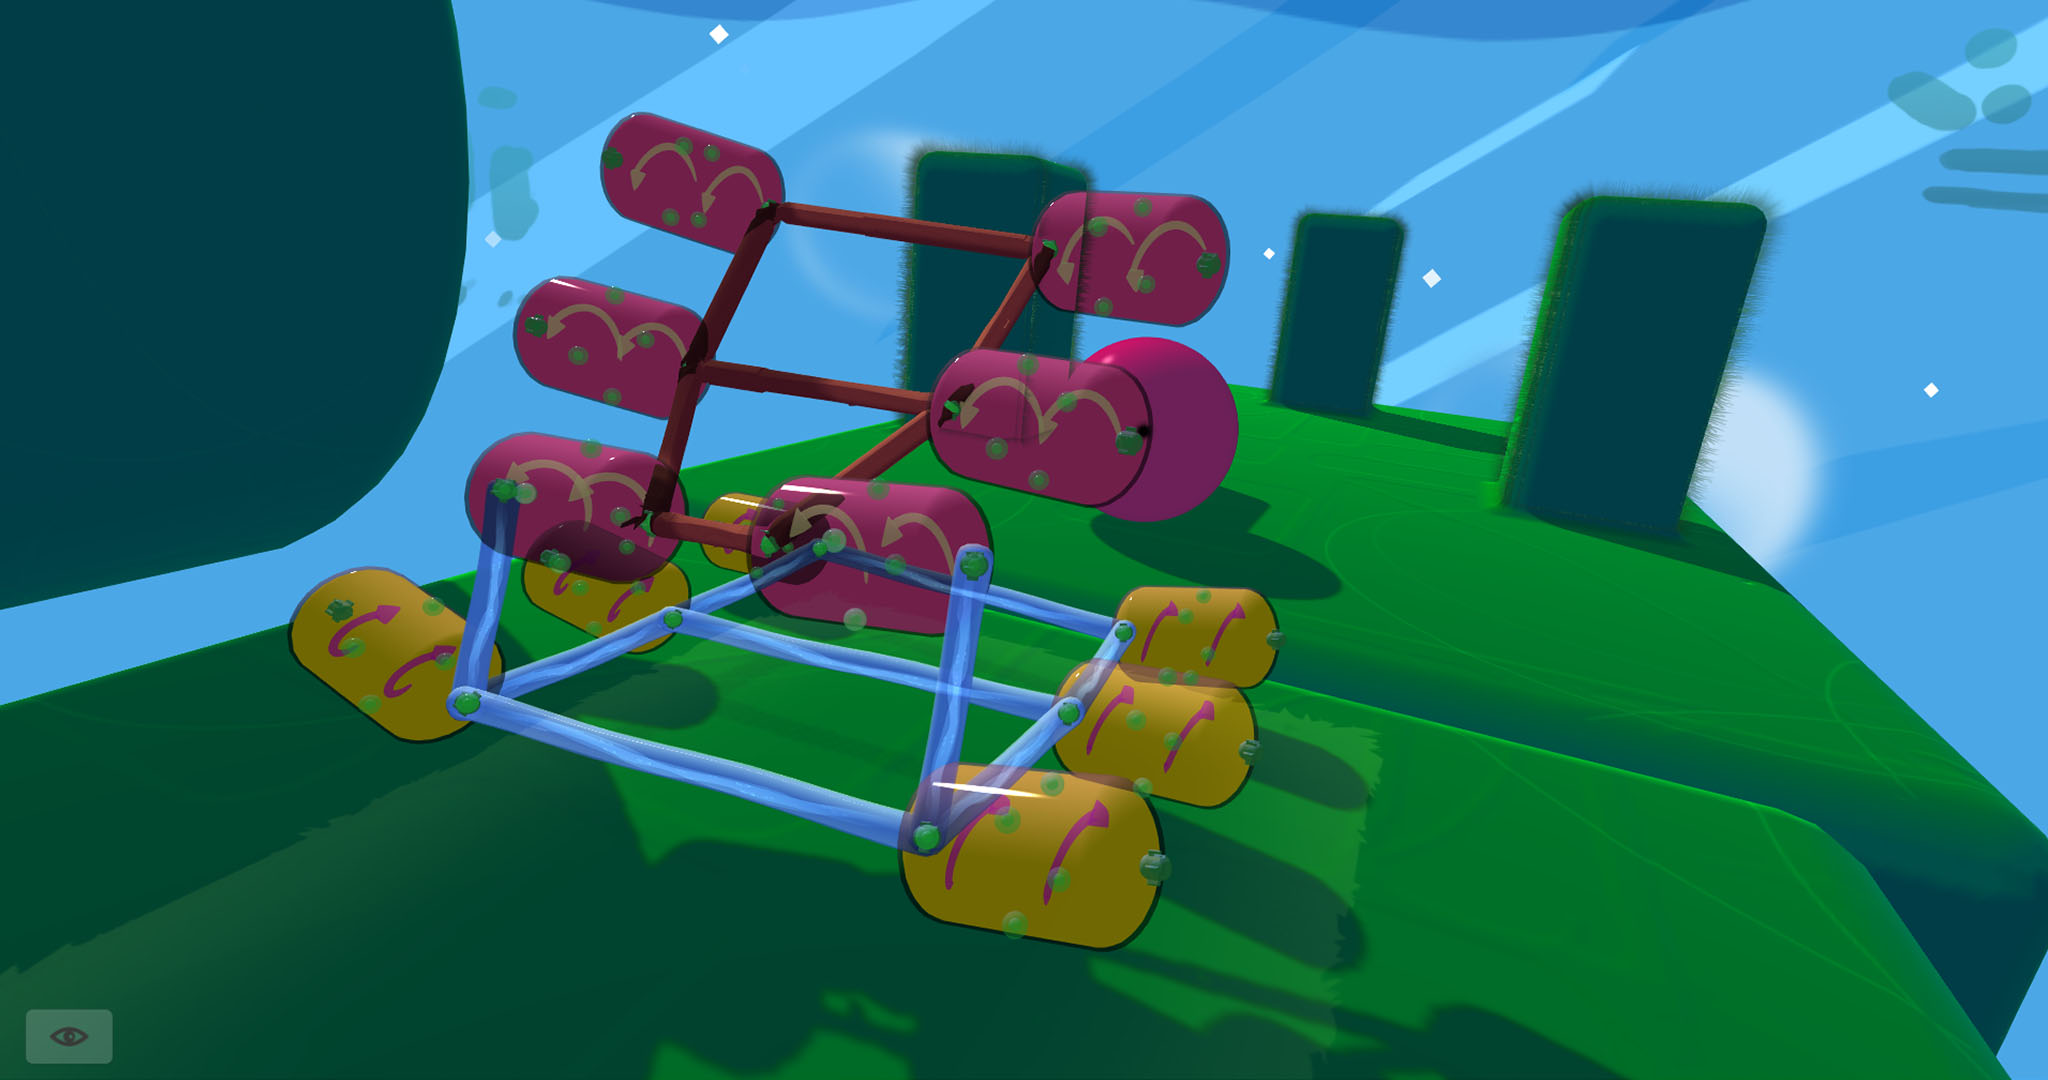 Fantastic Contraption Electric Box Walkthrough Science Games Blog Play About The Game